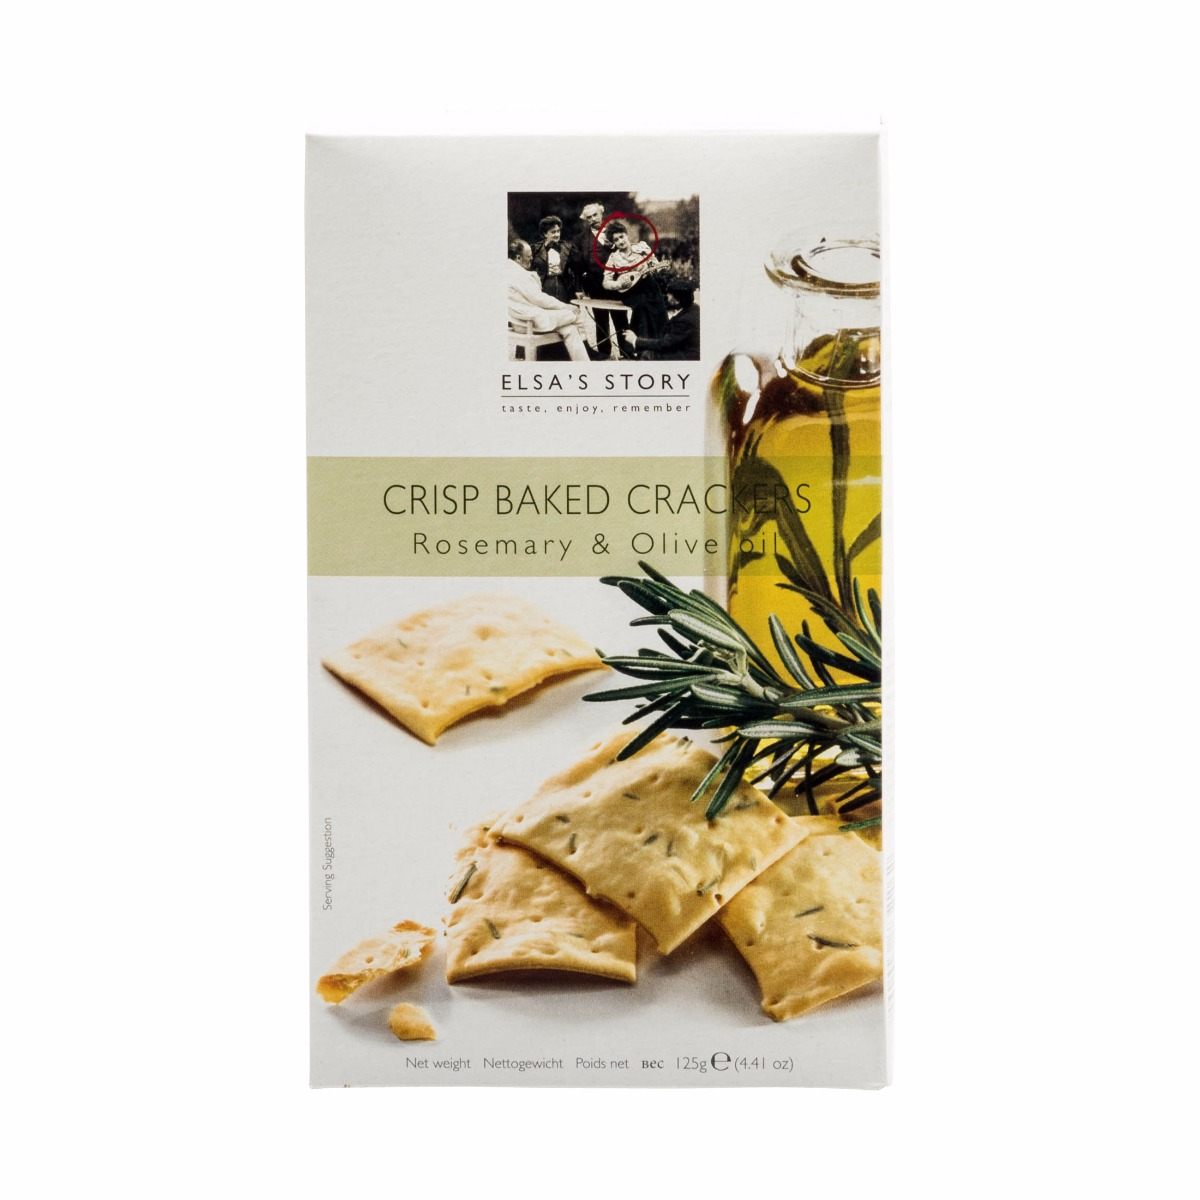 ROSEMARY & OLIVE OIL CRISPS